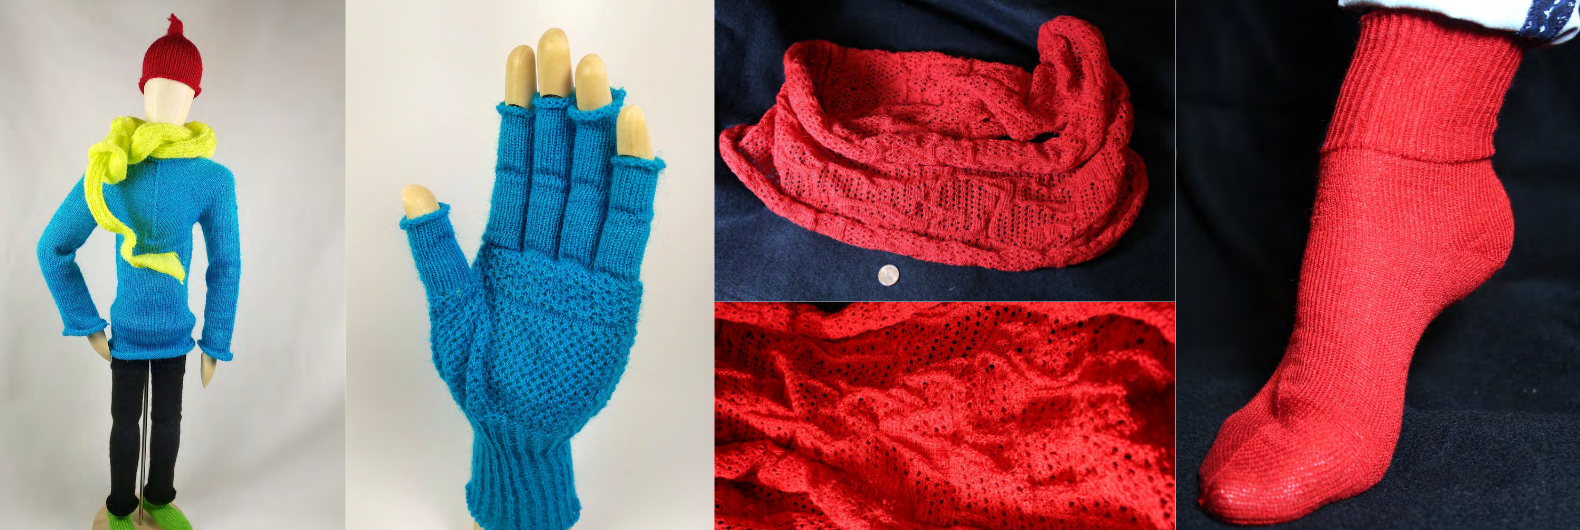 Mit Researchers Are Working On Ai Based Knitting Design Software That Will Let Anyone Even Novices Make Their Own Clothes Techcrunch